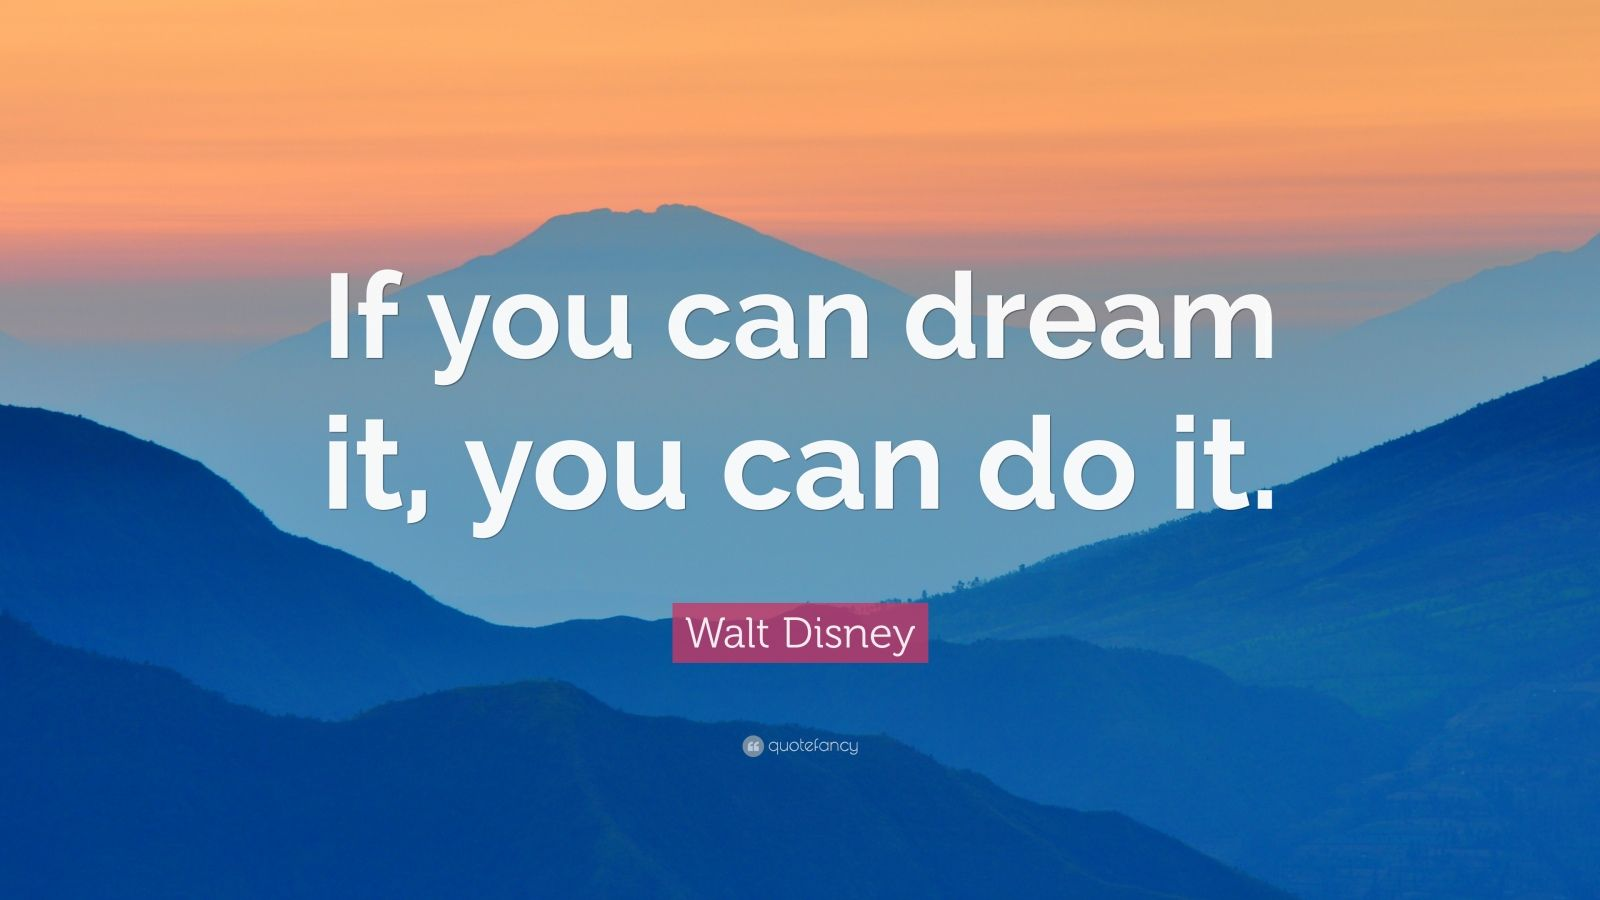 walt disney quote if you can dream it you can do it 28 wallpapers quotefancy. Black Bedroom Furniture Sets. Home Design Ideas